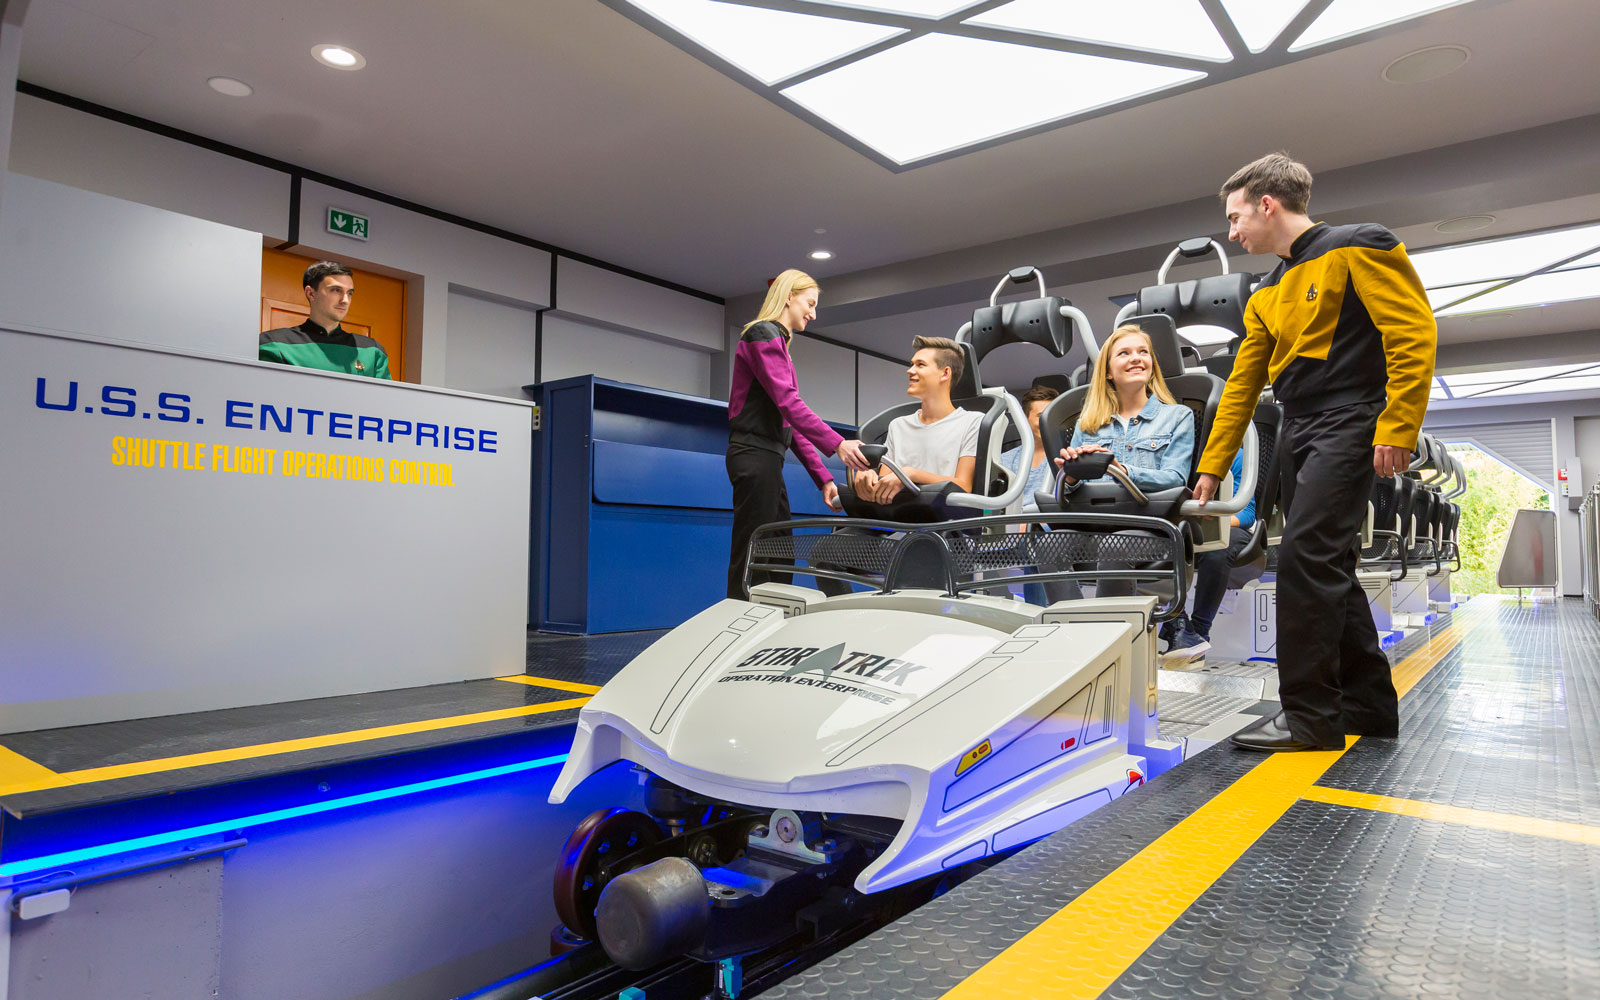 star trek ride shuttle